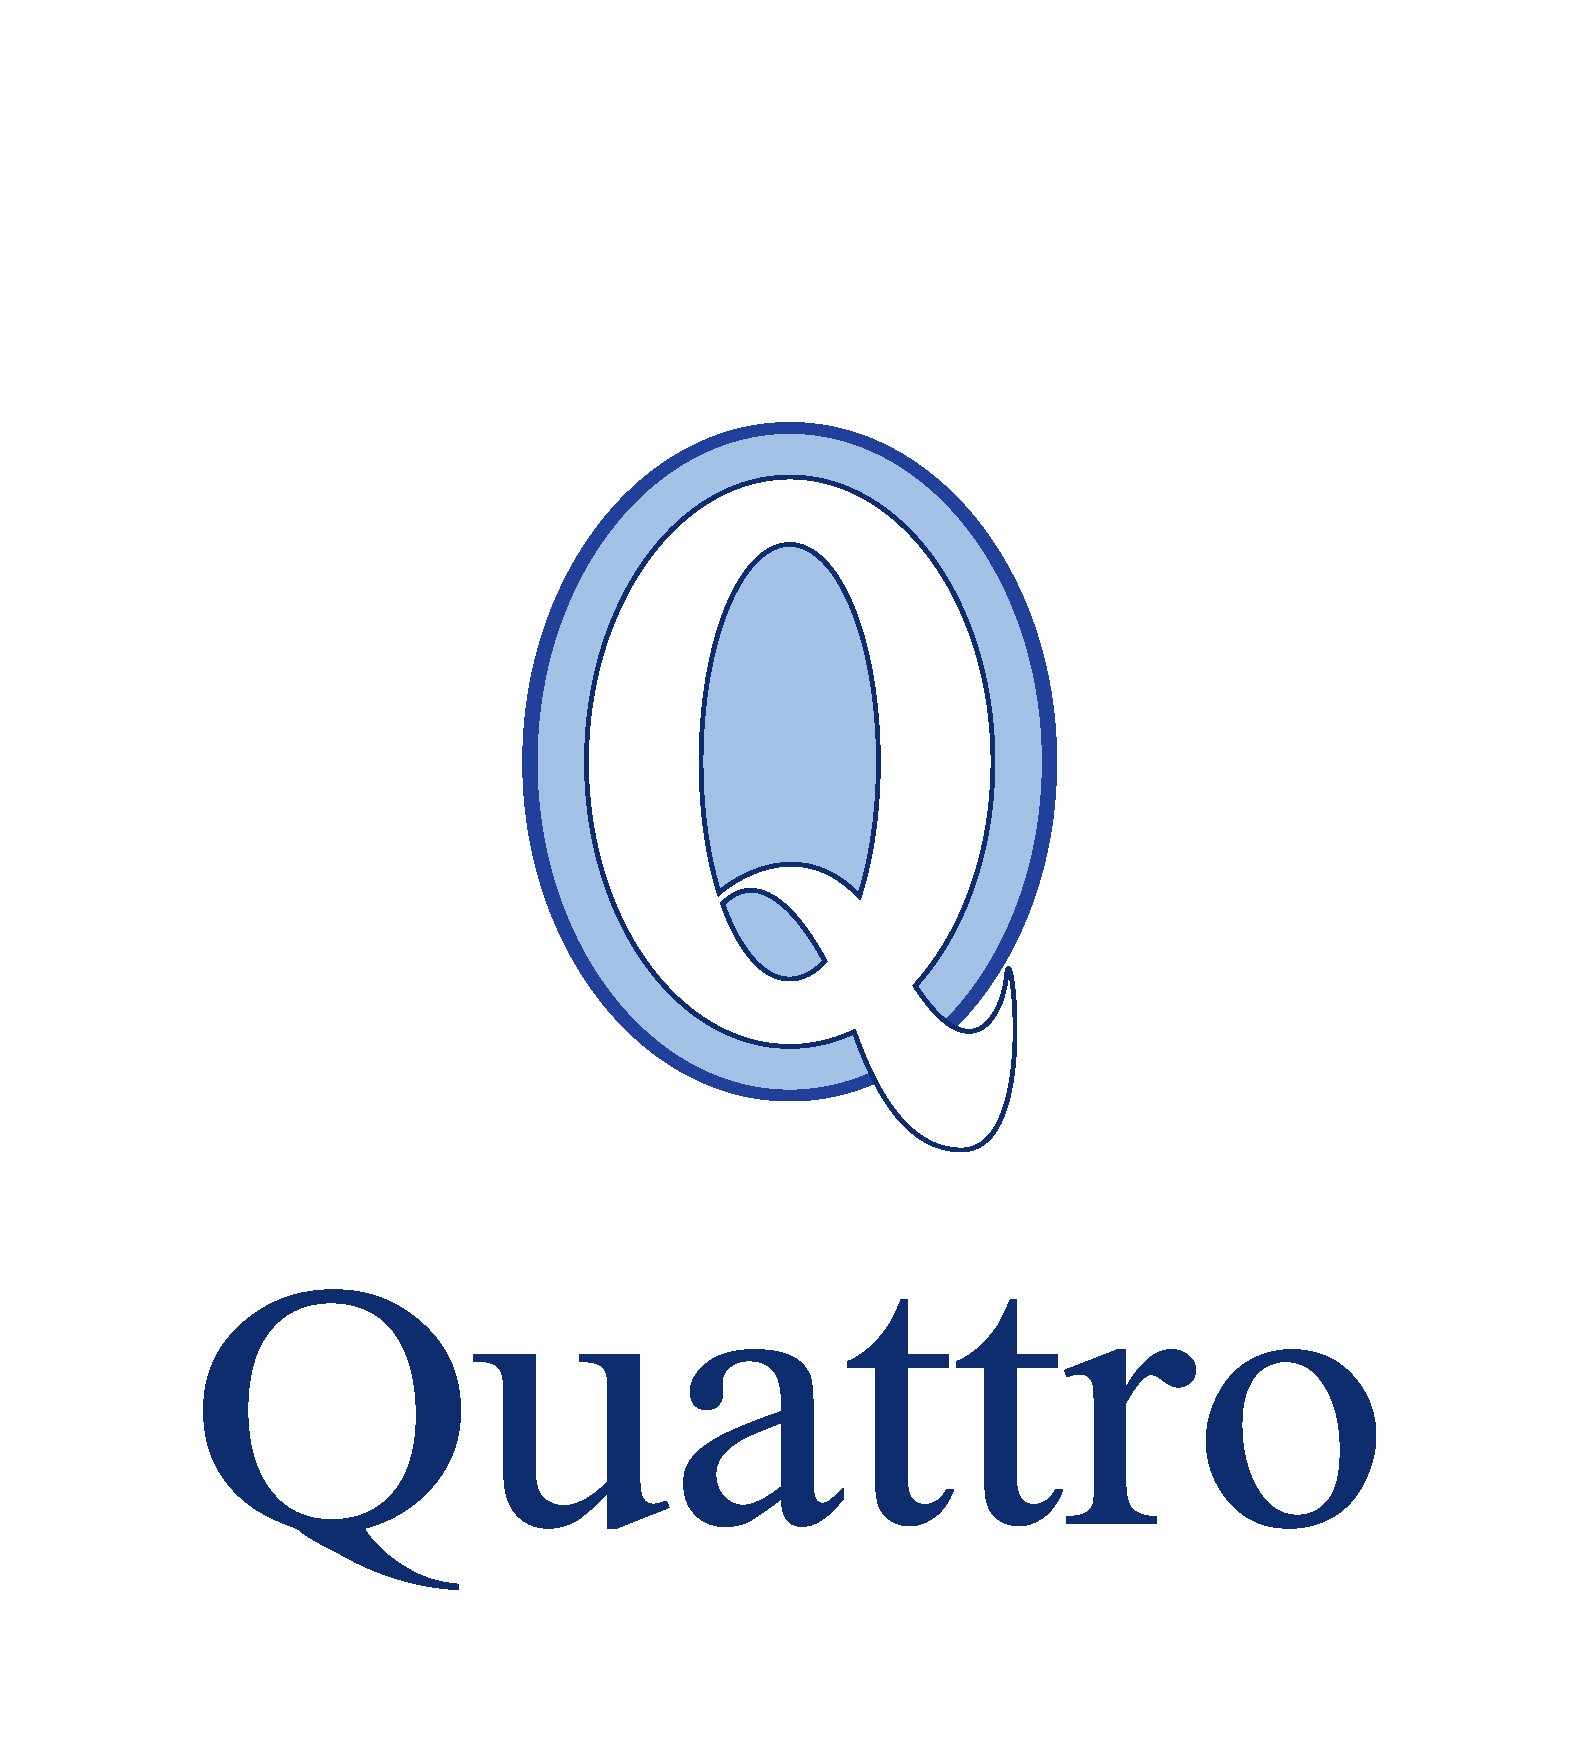 F.Quattro full colour logo white background - new entities WHITE